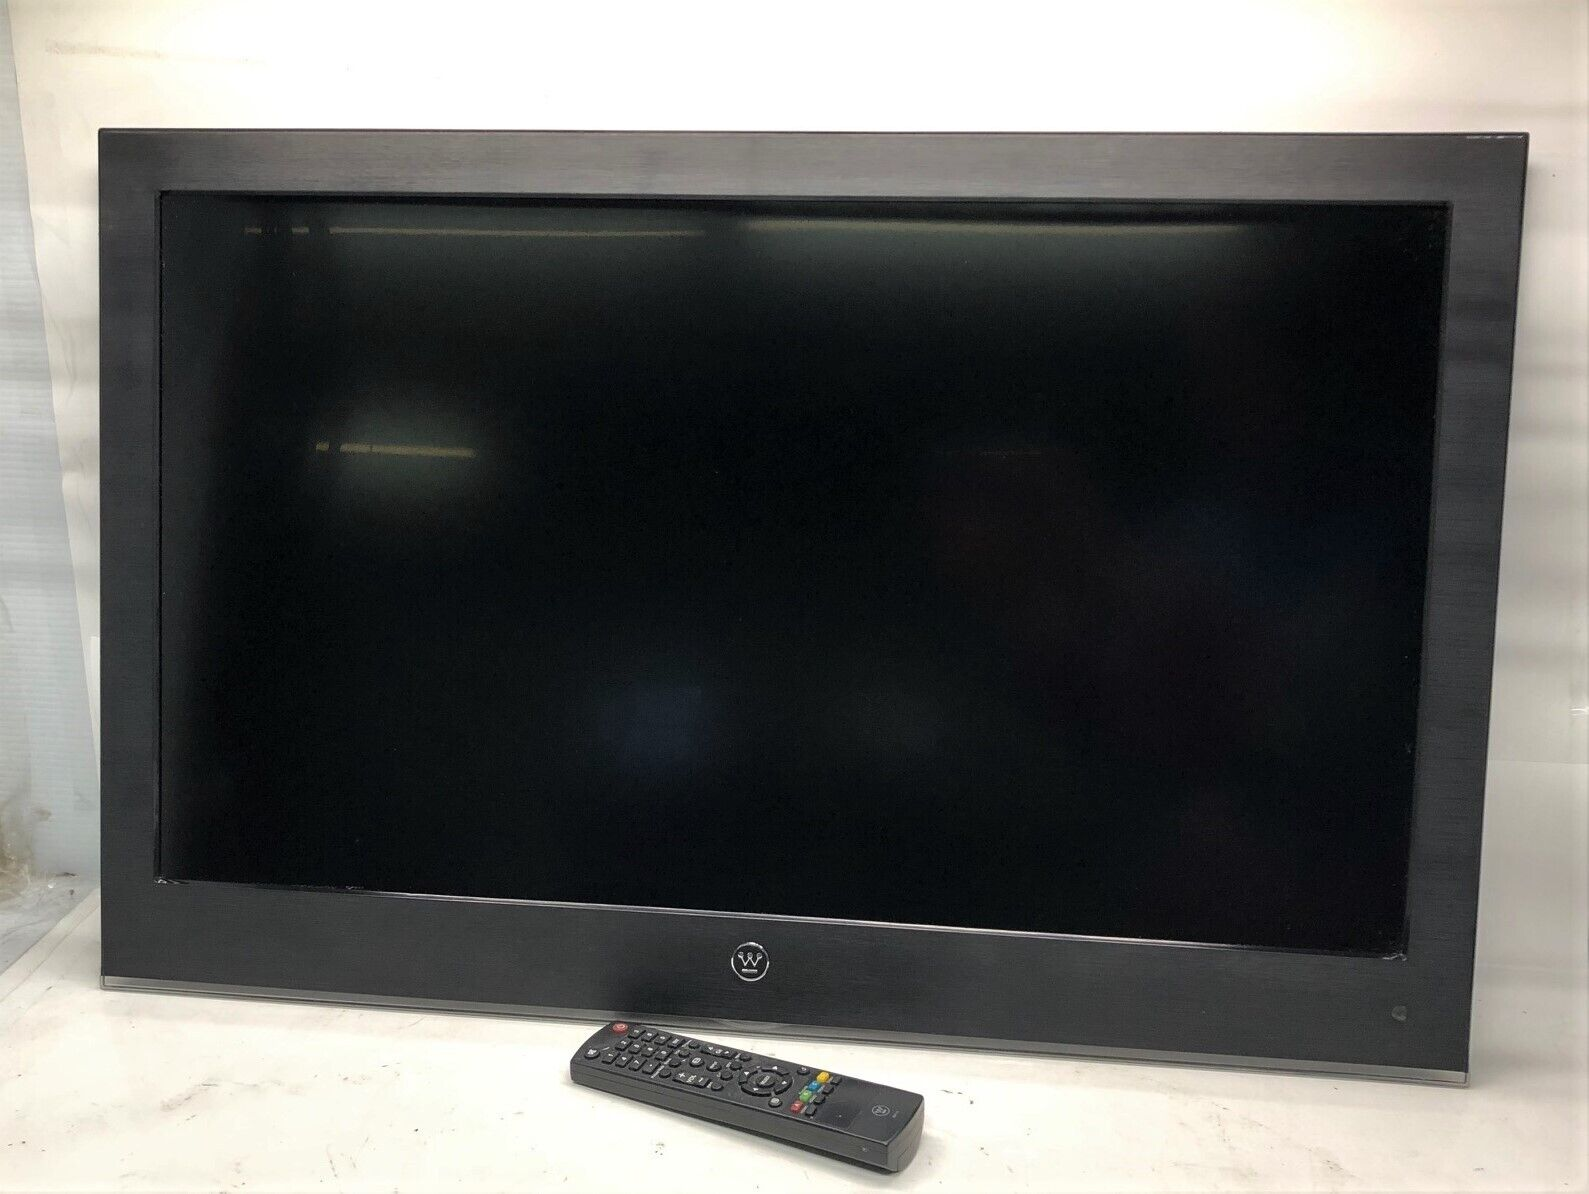 "Westinghouse LD-3280 32"" LED-LCD TV w/VGA PC Interface"